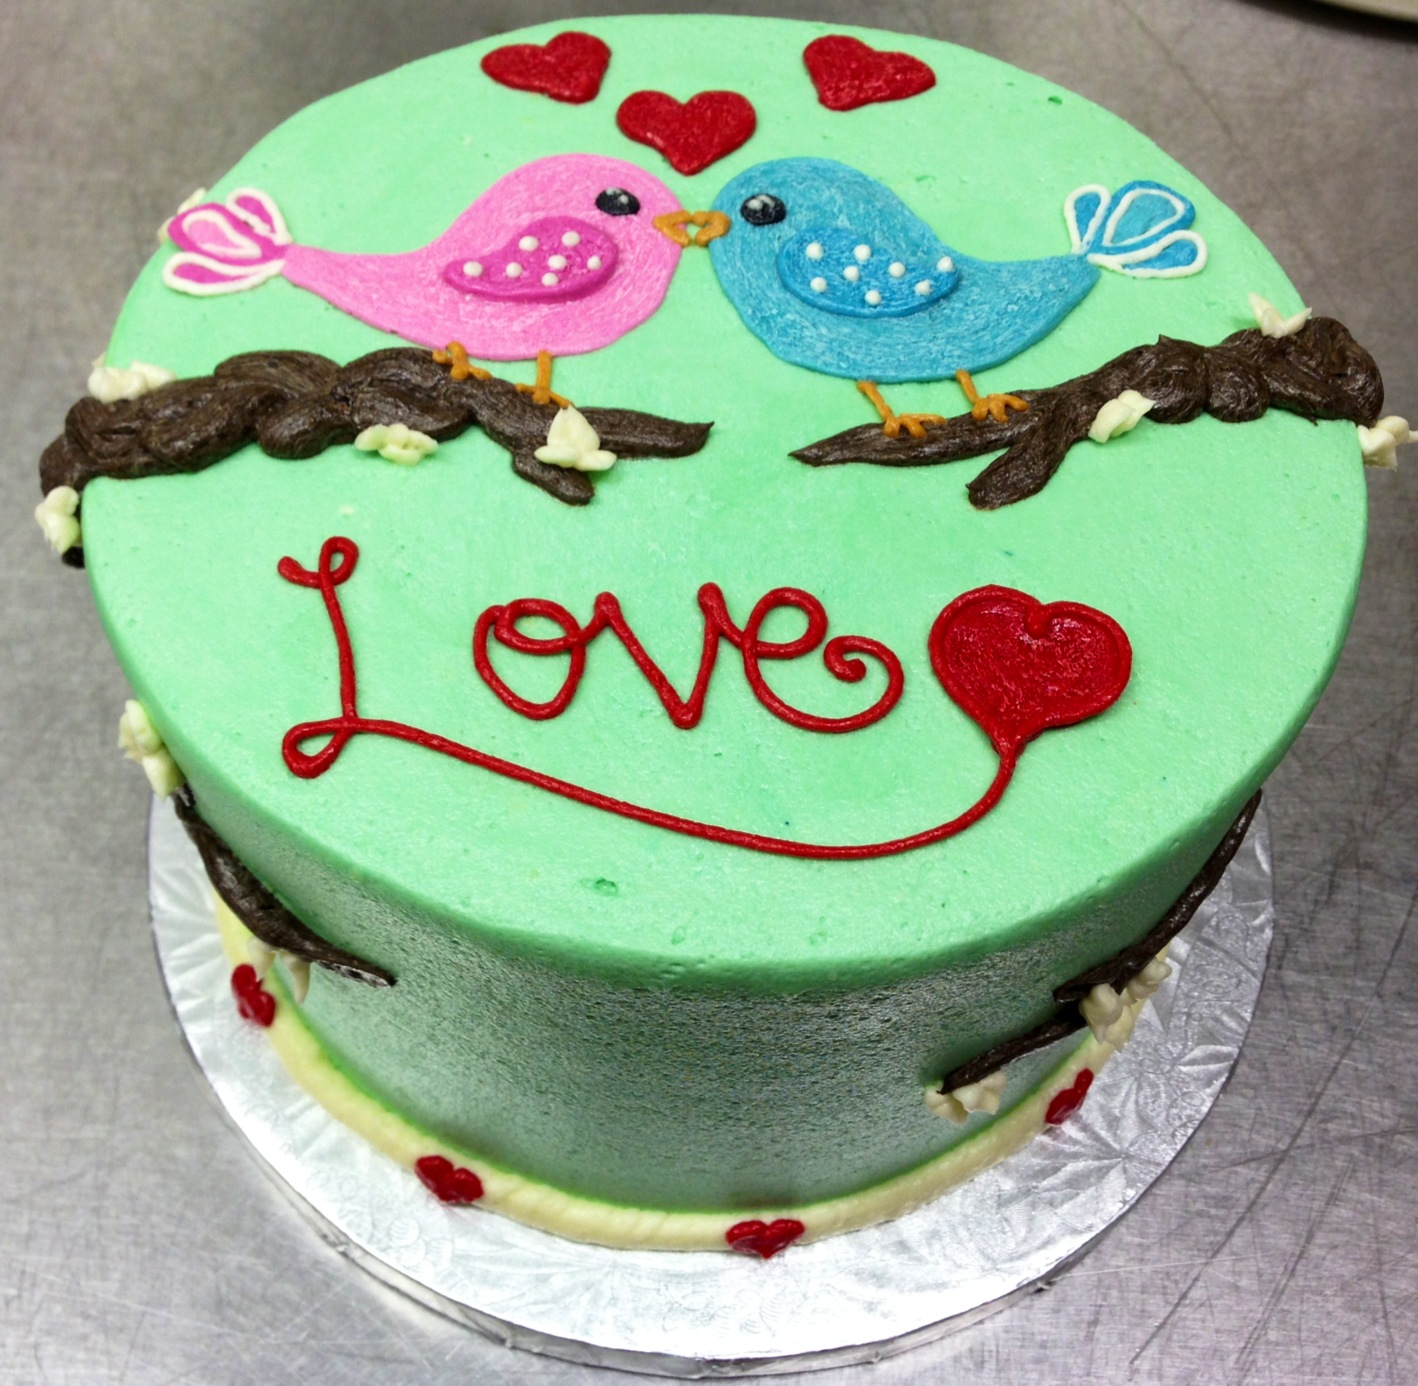 Valentine s day sweets and ideas from society bakery - Valentines day cake ideas ...